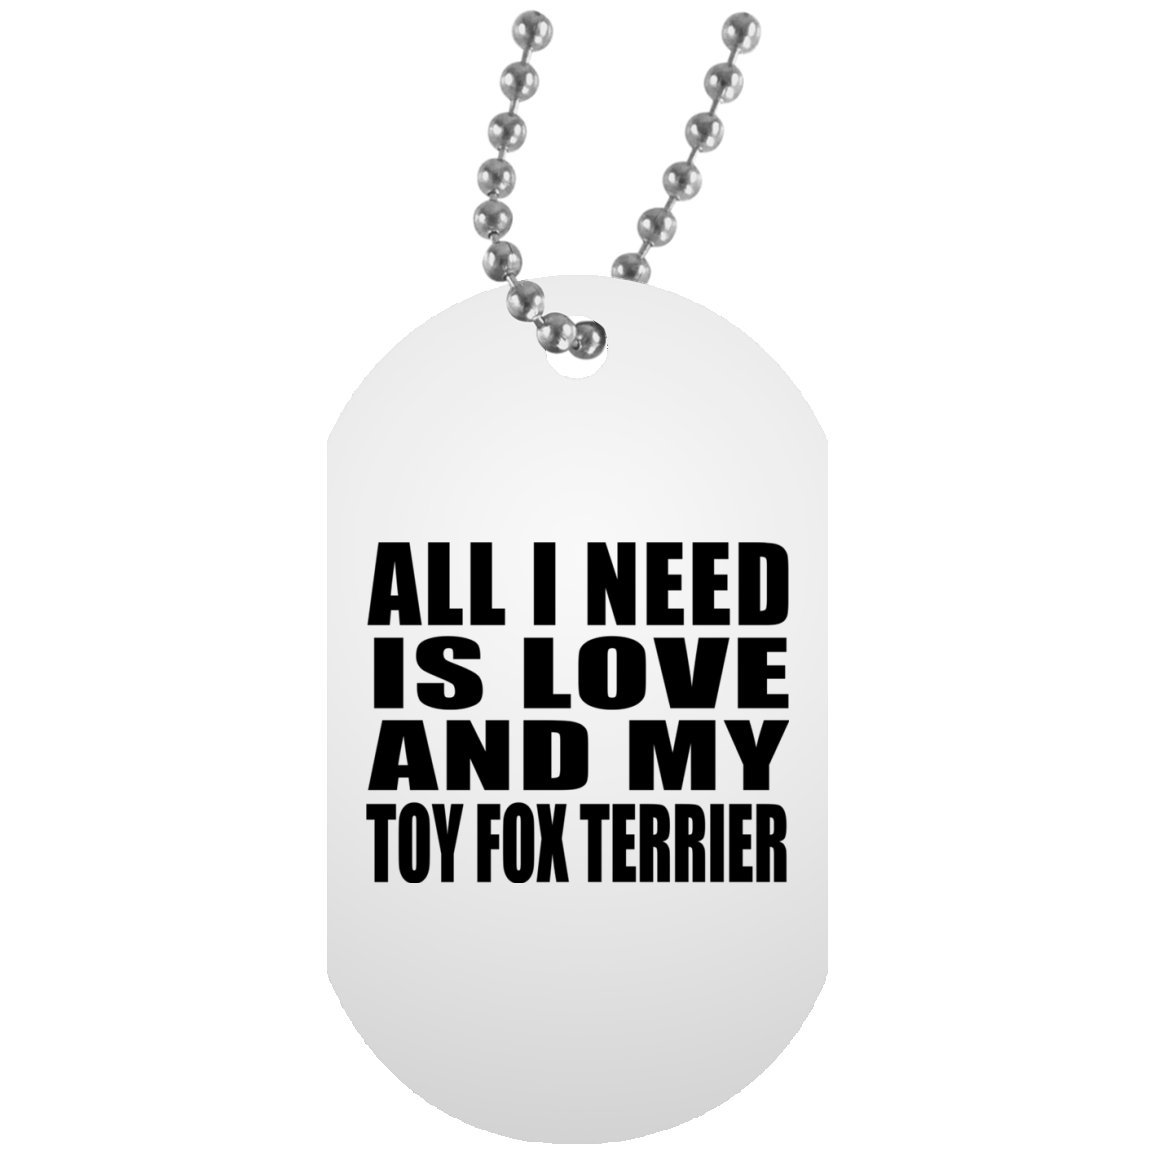 Designsify Dog Lover Dog Tag, All I Need Is Love And My Toy Fox Terrier - Military Dog Tag, Aluminum ID Tag Necklace, Best Gift for Dog Owner, Pet Lover, Family, Friend, Birthday, Holiday by Designsify (Image #1)